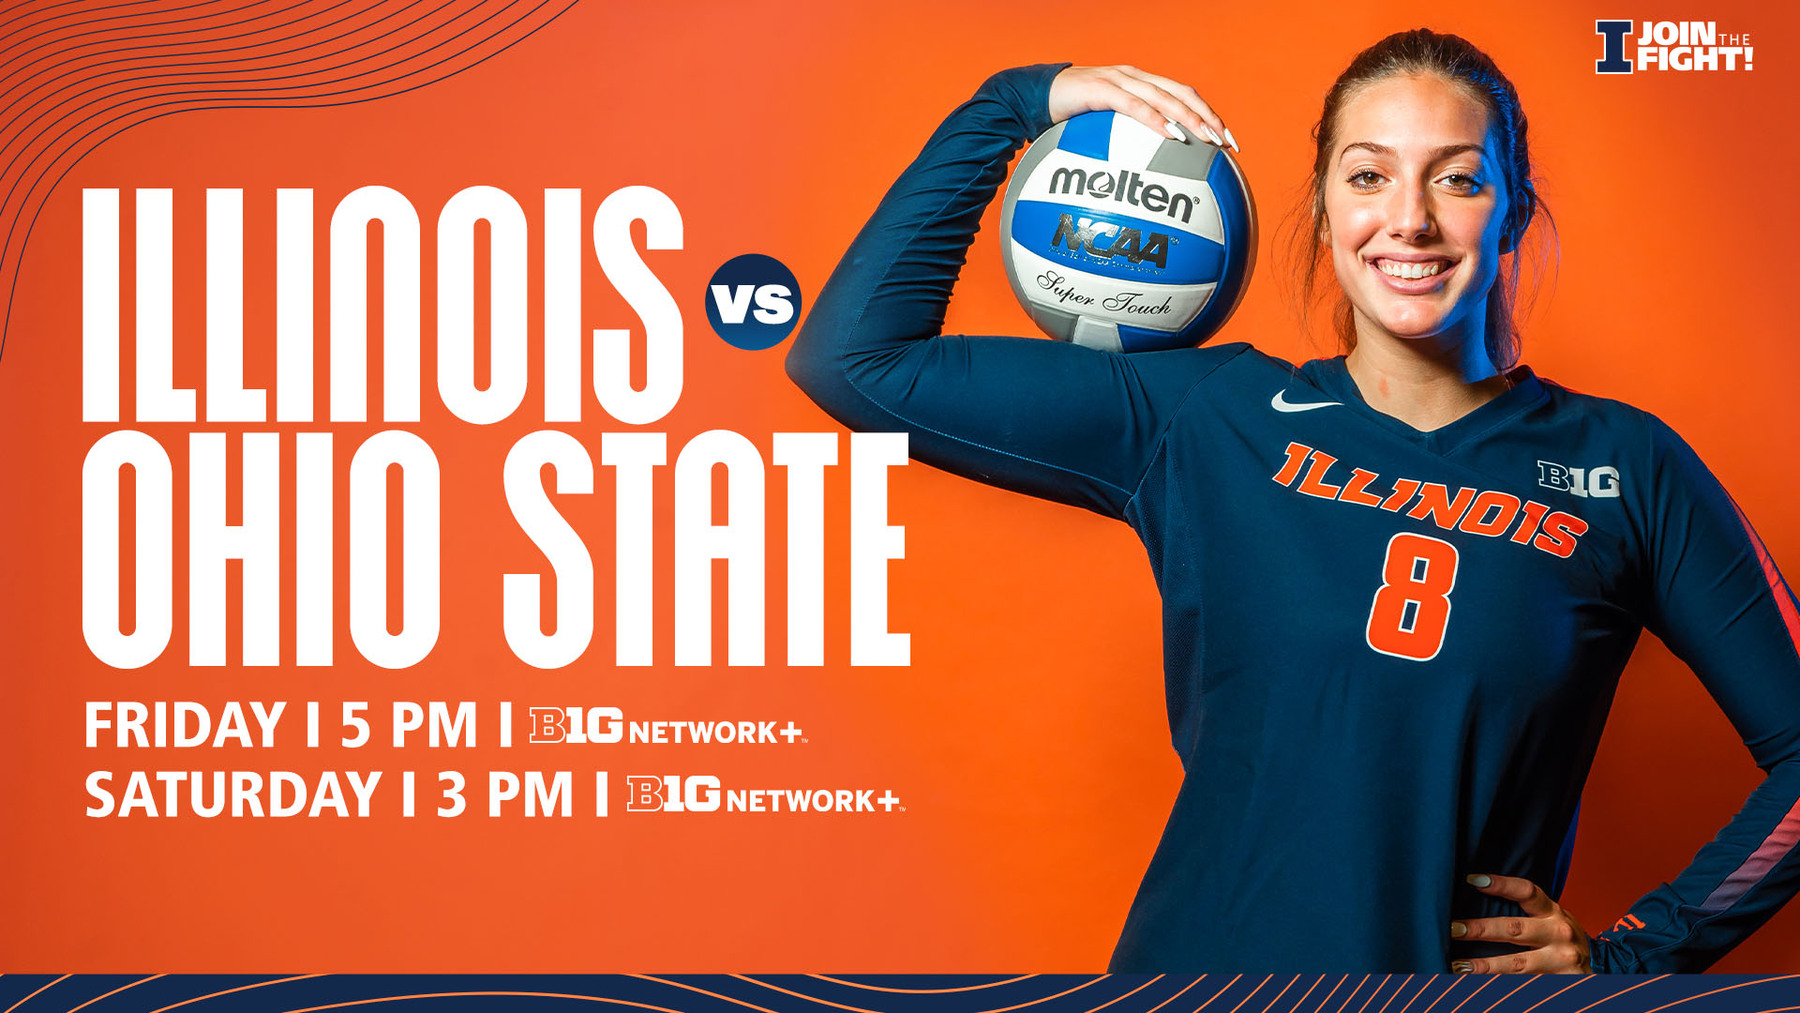 graphic promoting weekend volleyball games featuring freshman Maddie Whittington